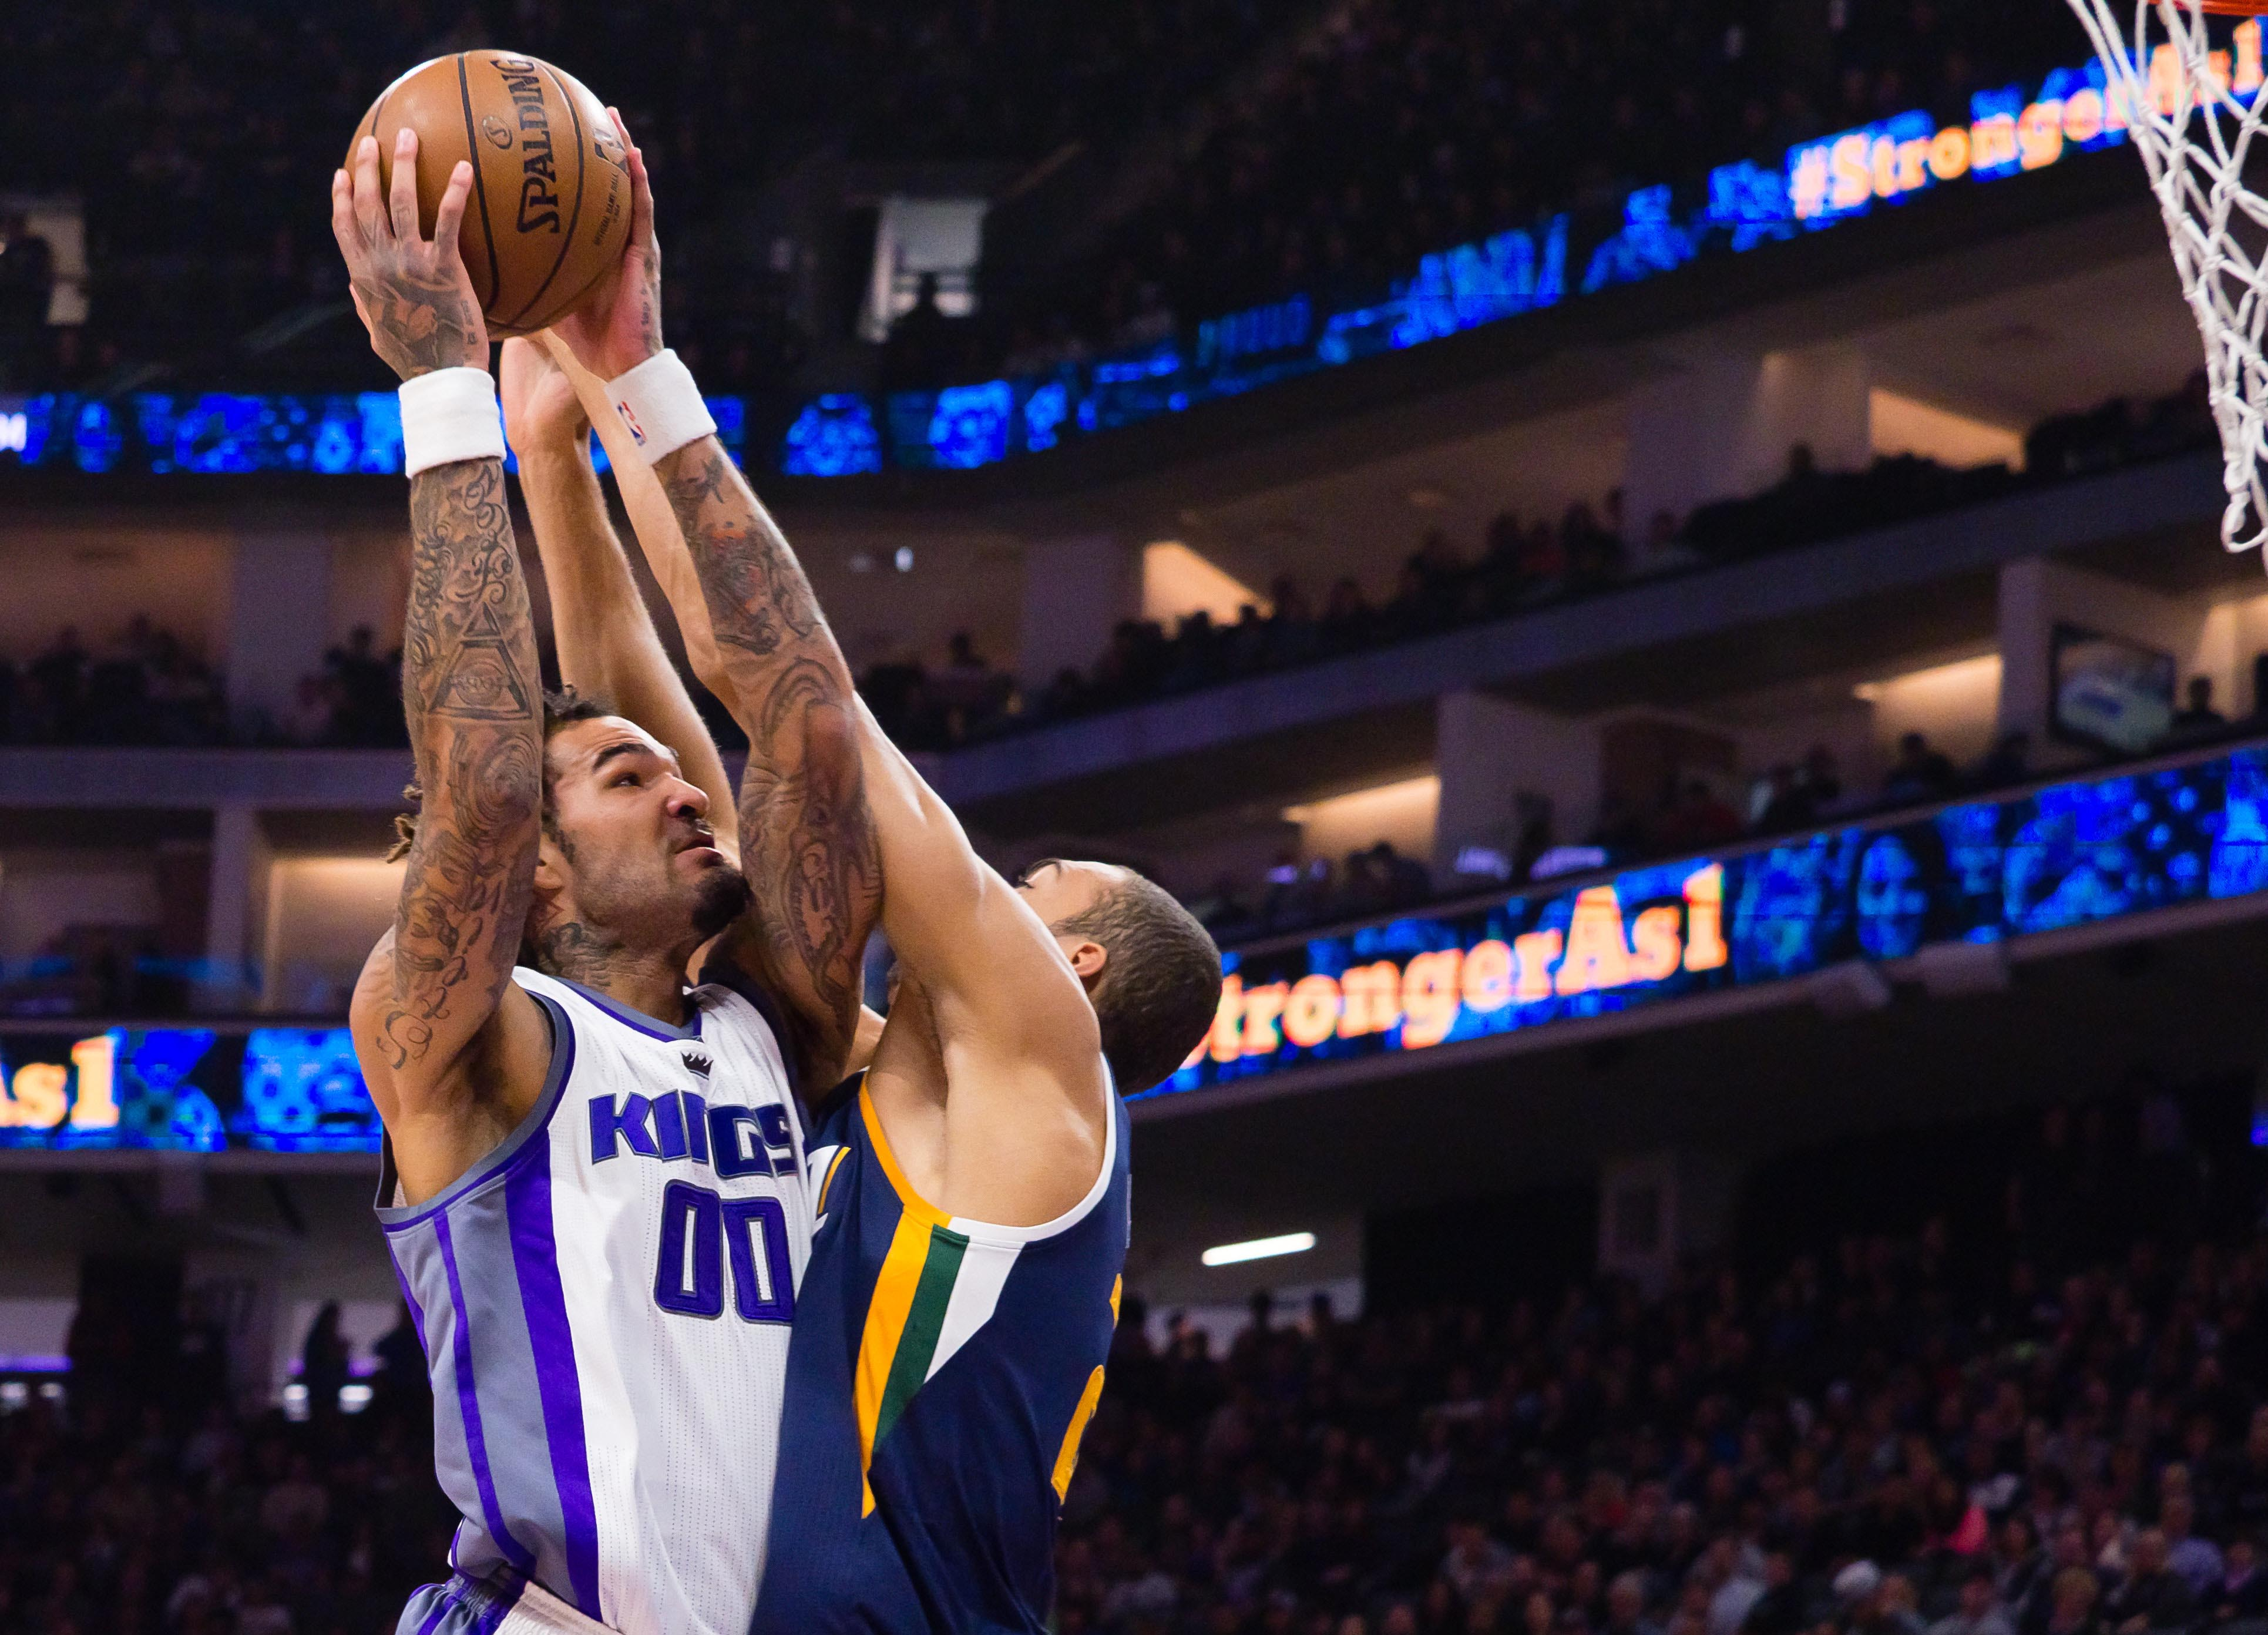 9920451-nba-utah-jazz-at-sacramento-kings